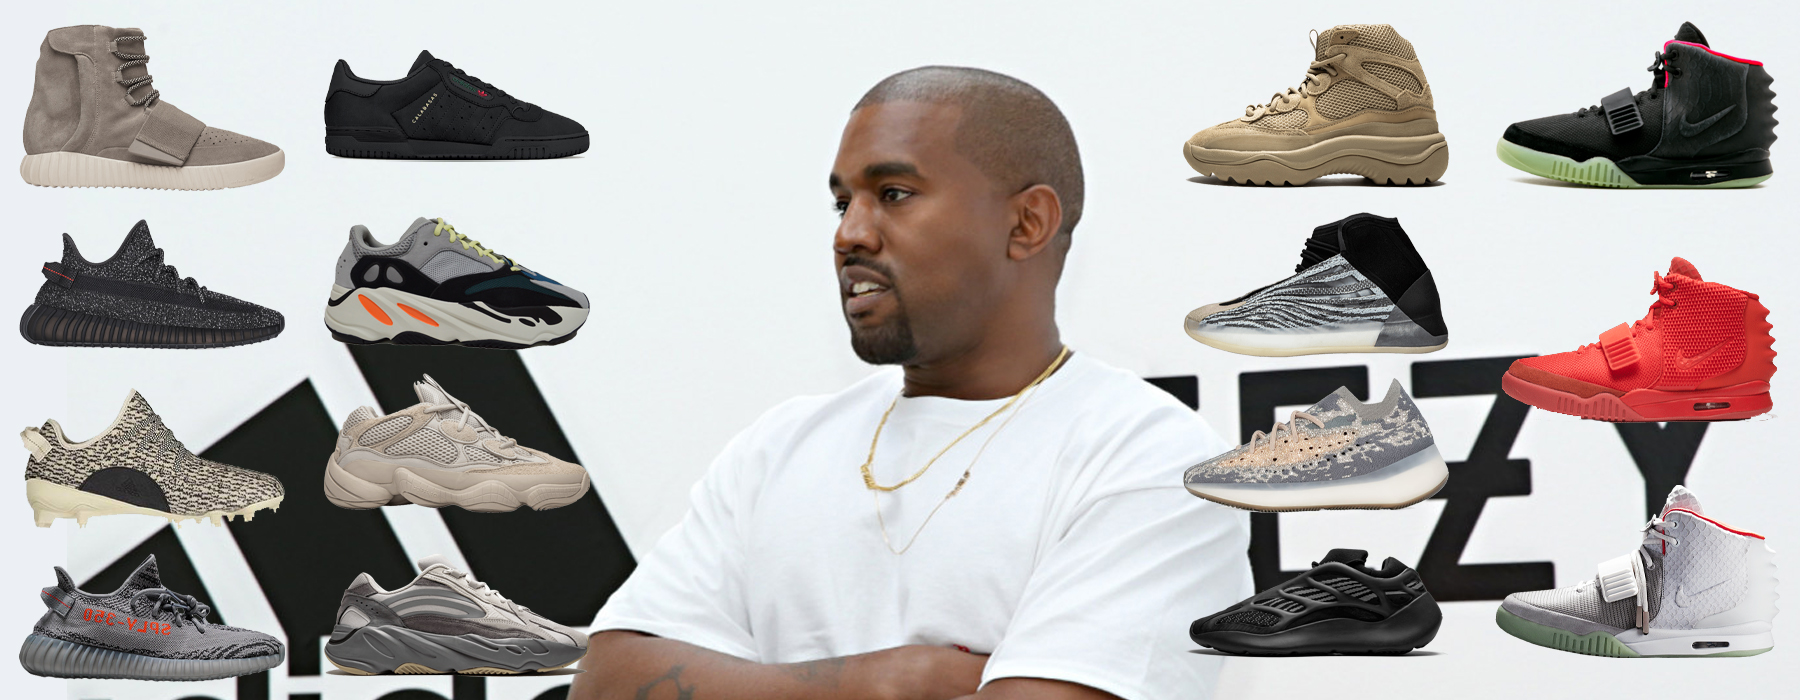 Kanye West ve Sneakers -2